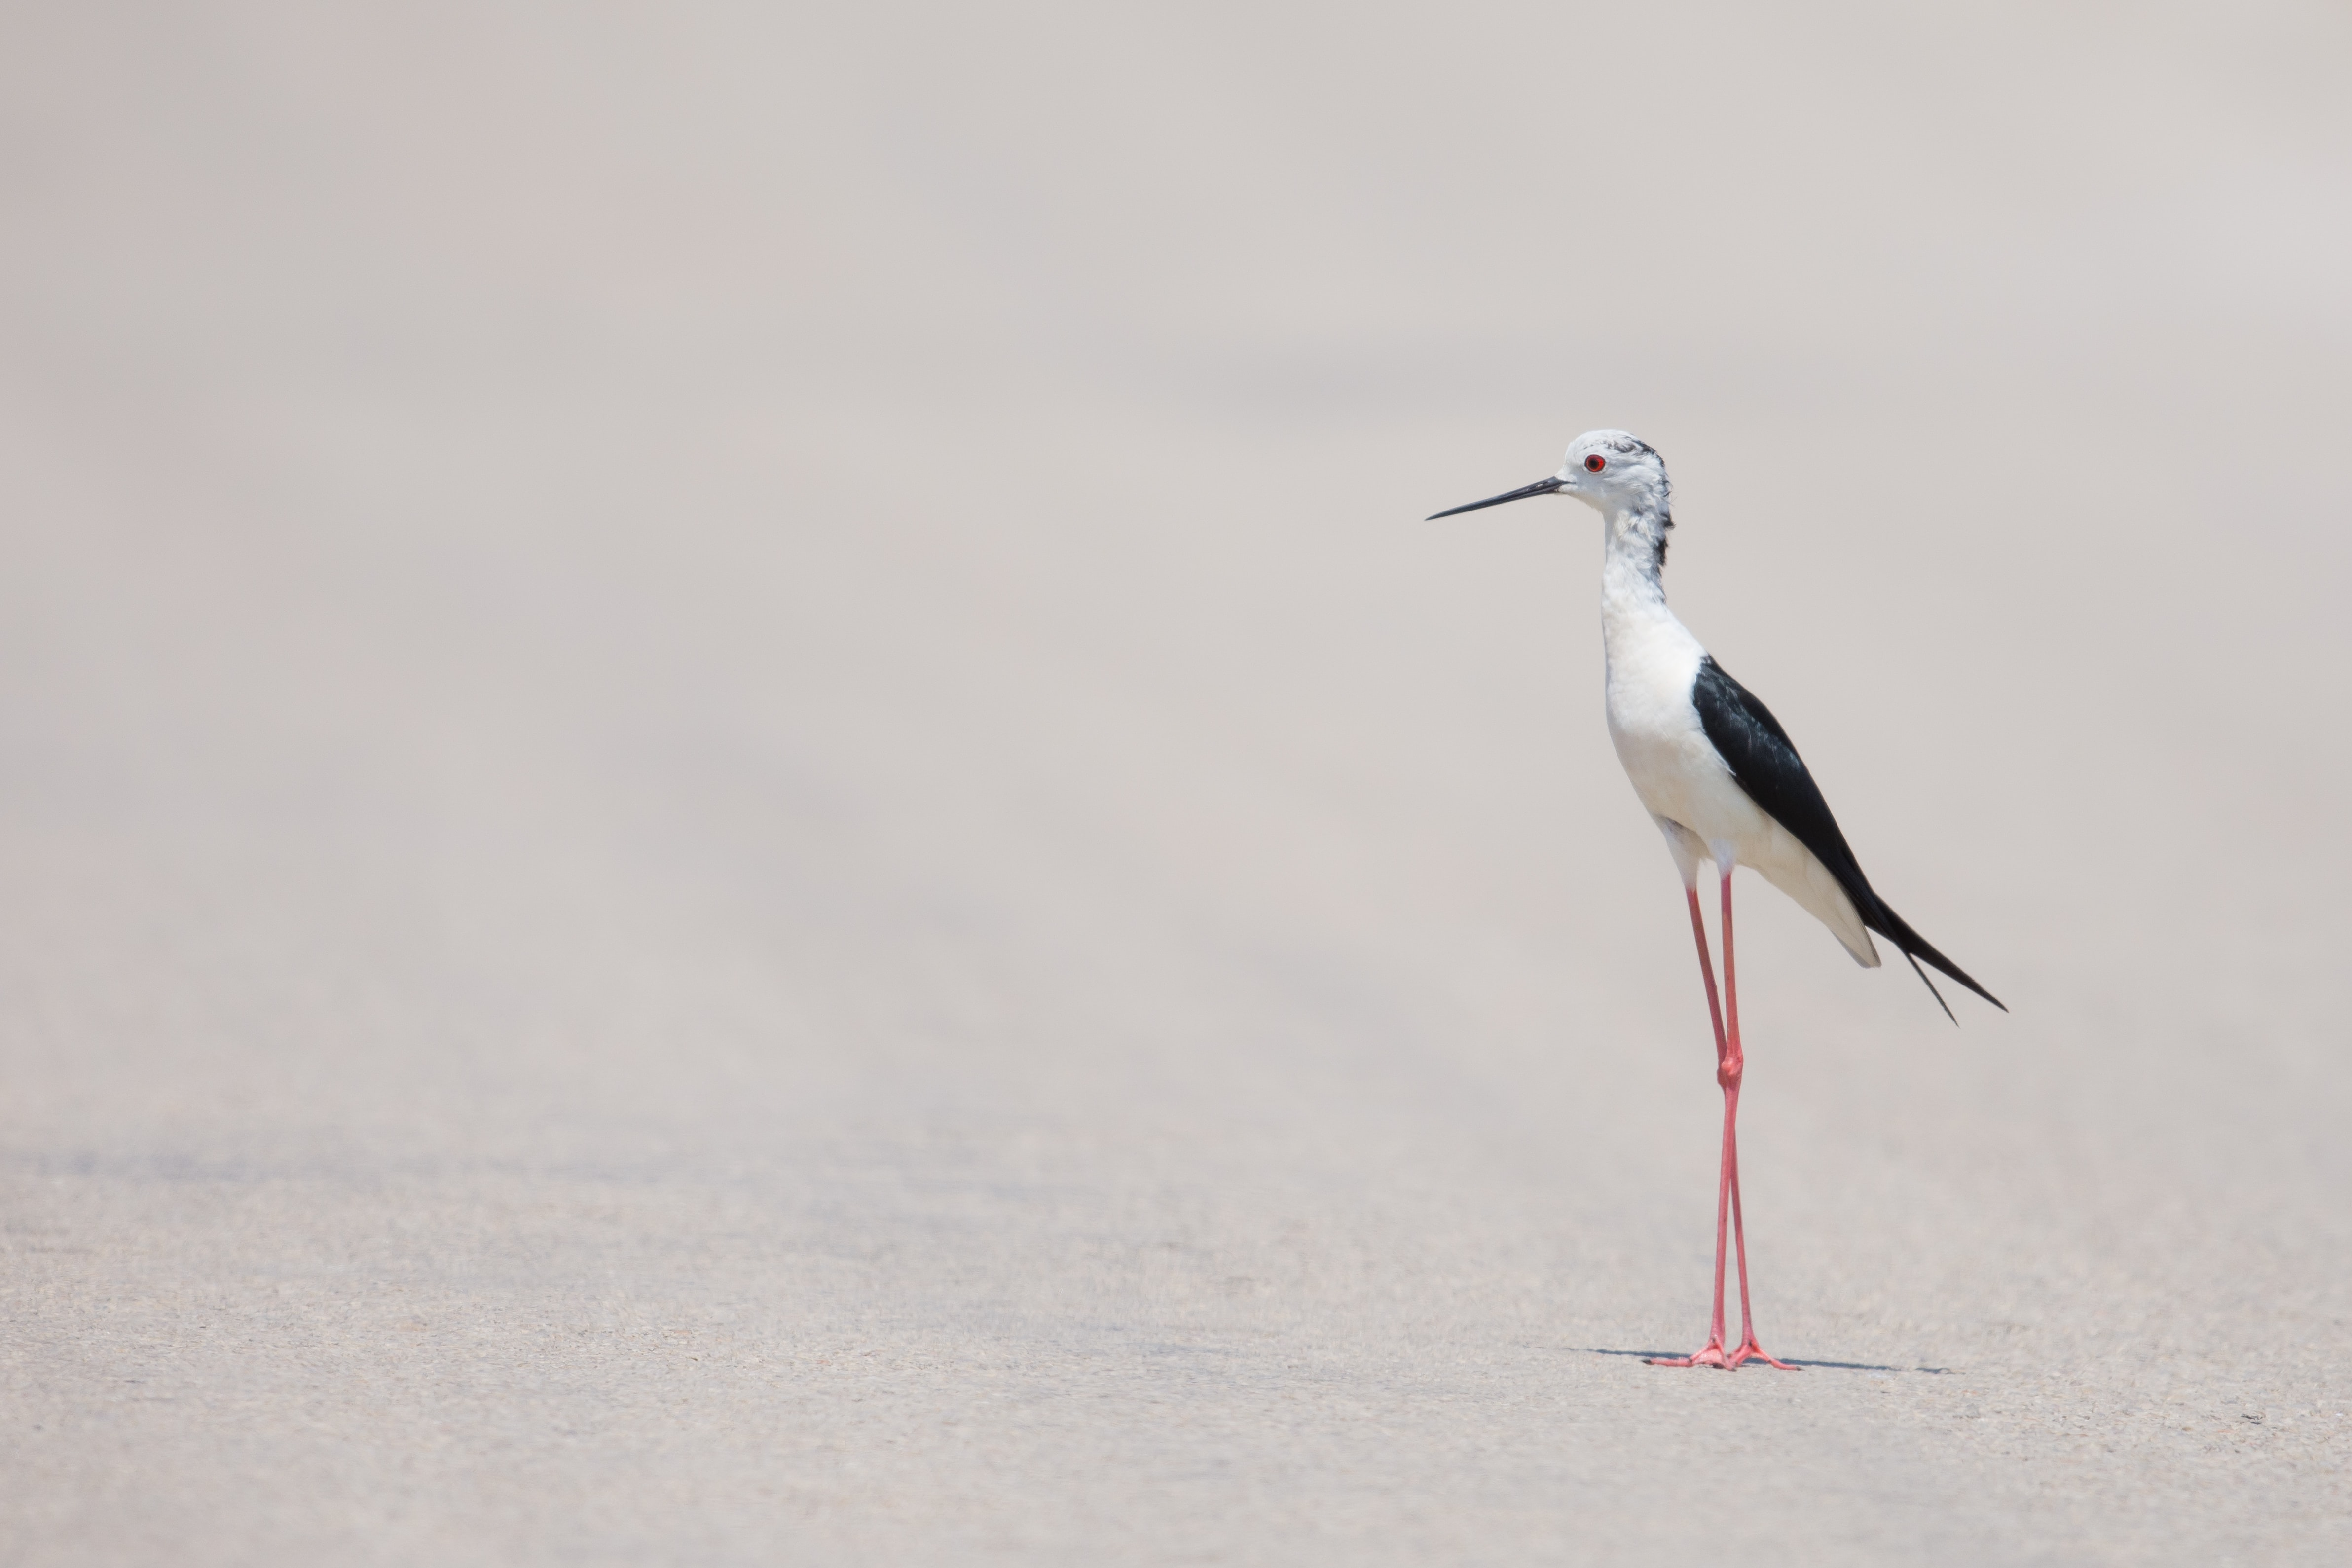 White seabird with long legs standing on the sand beach at Ebro